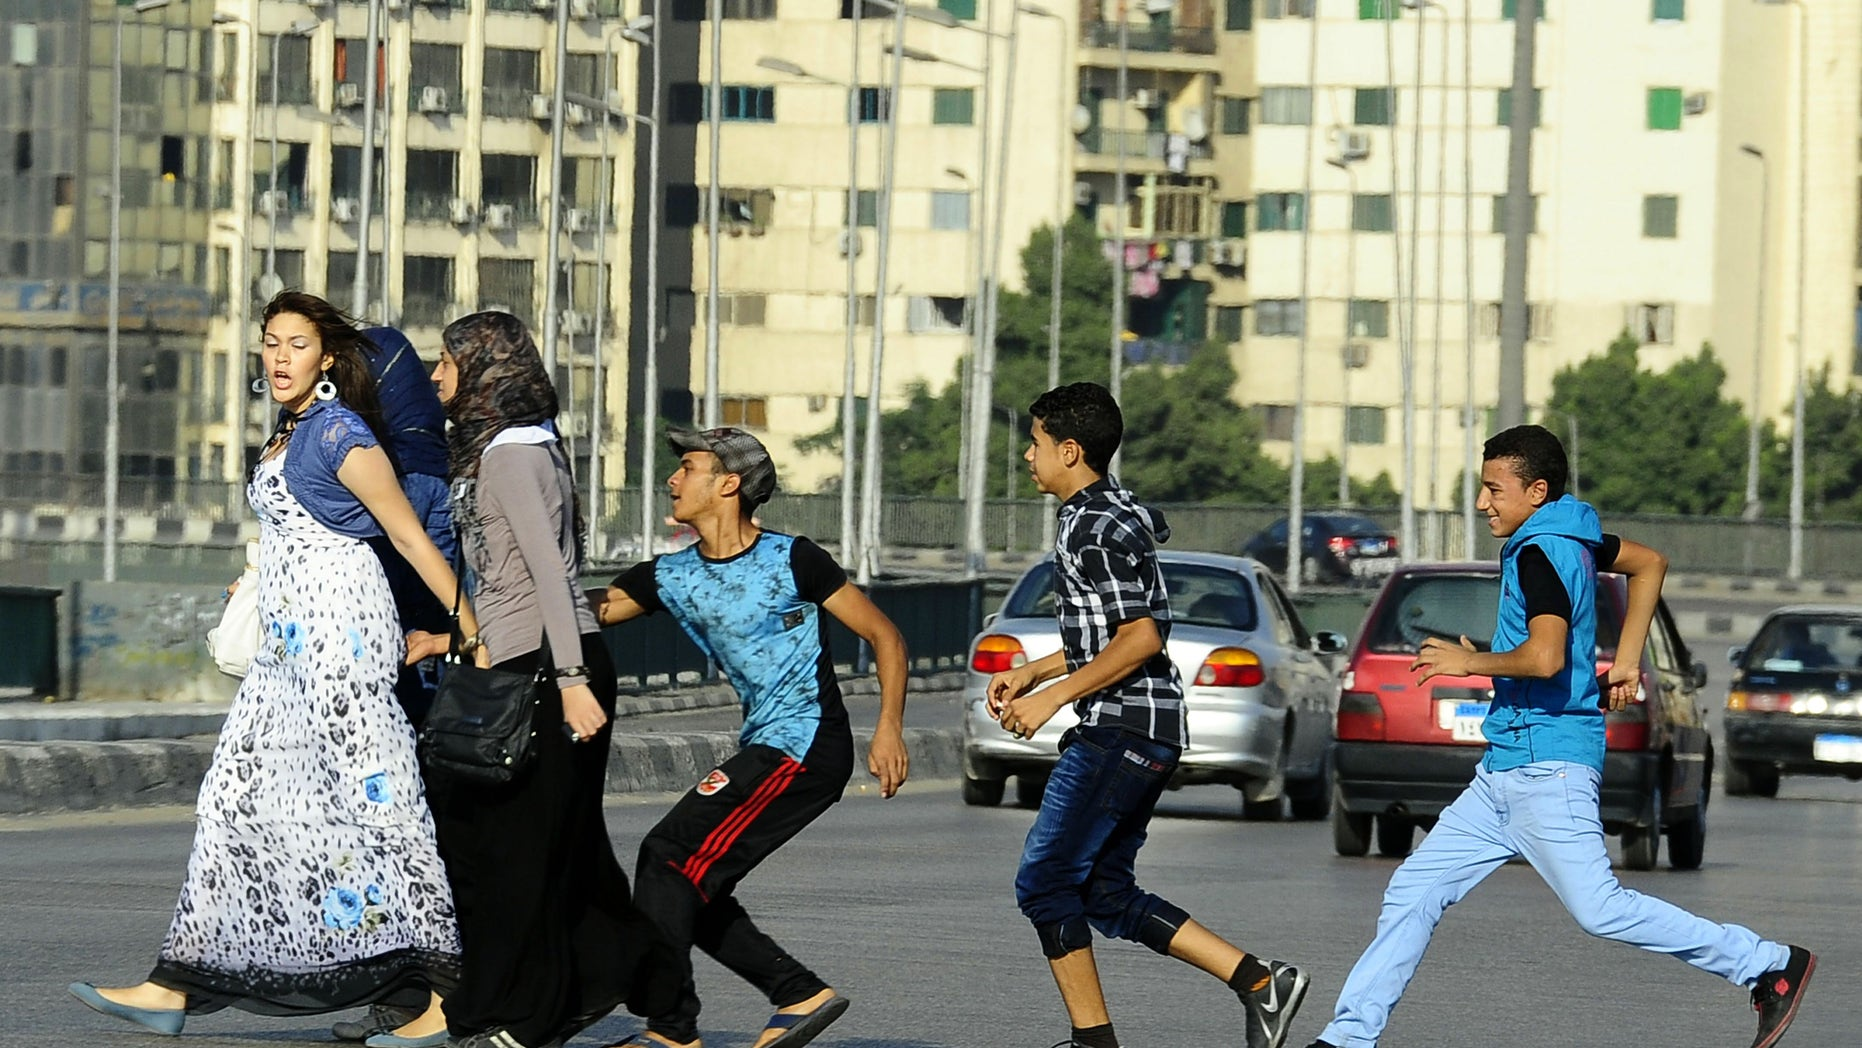 Aug. 20, 2012 - FILE photo of Egyptian youth groping a woman crossing the street in Cairo, Egypt. Abdel-Fattah el-Sissi, Egypt's newly sworn-in president, has apologized in person to a woman who was sexually assaulted by a mob during weekend celebrations marking his inauguration. Several women were assaulted during the June 8th inaugural festivities.